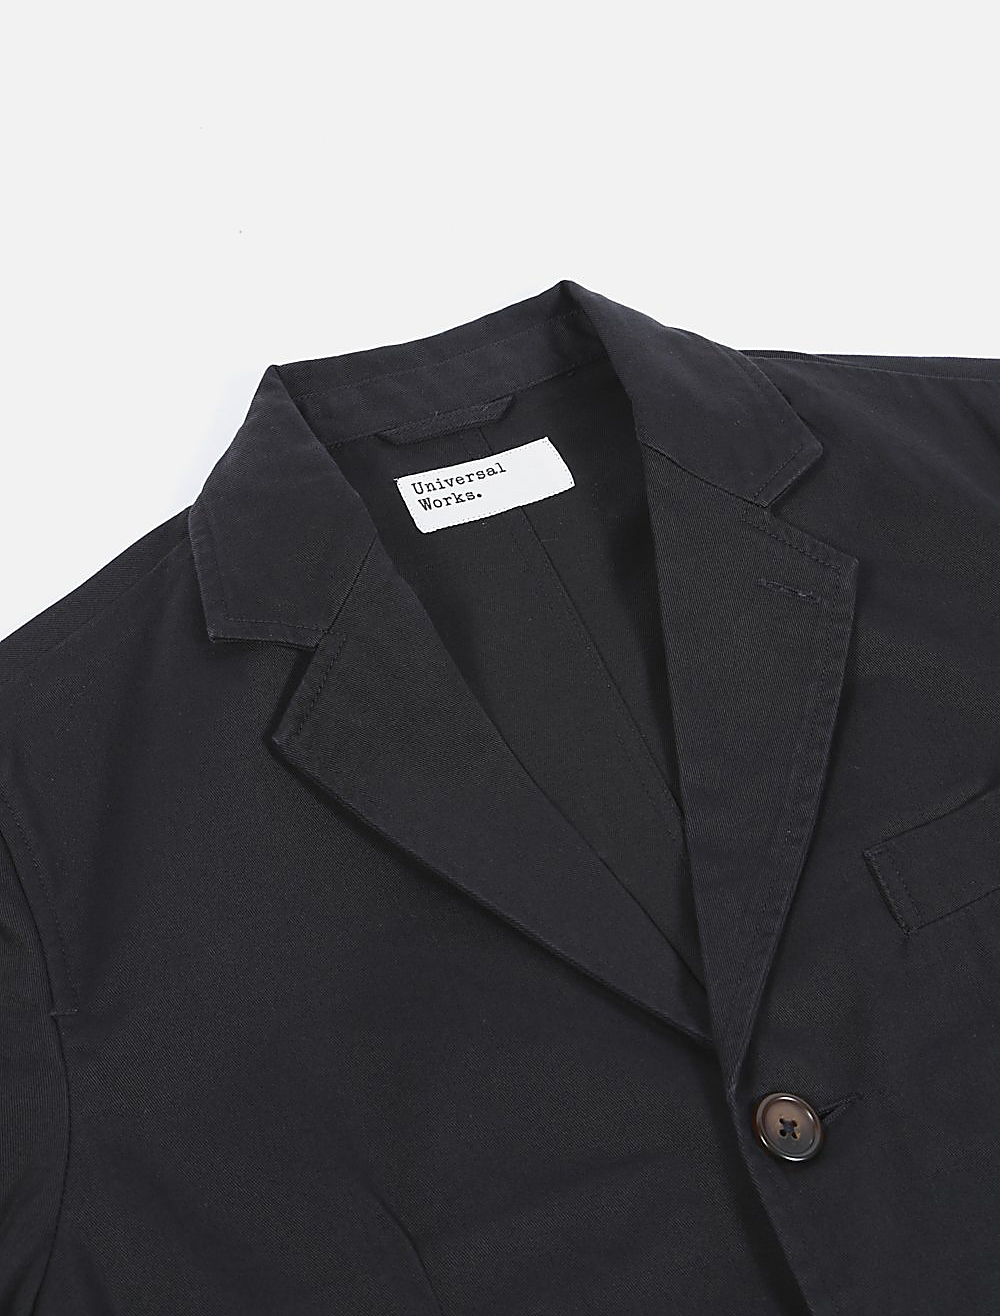 Universal Works London Jacket Twill Black dettaglio collo